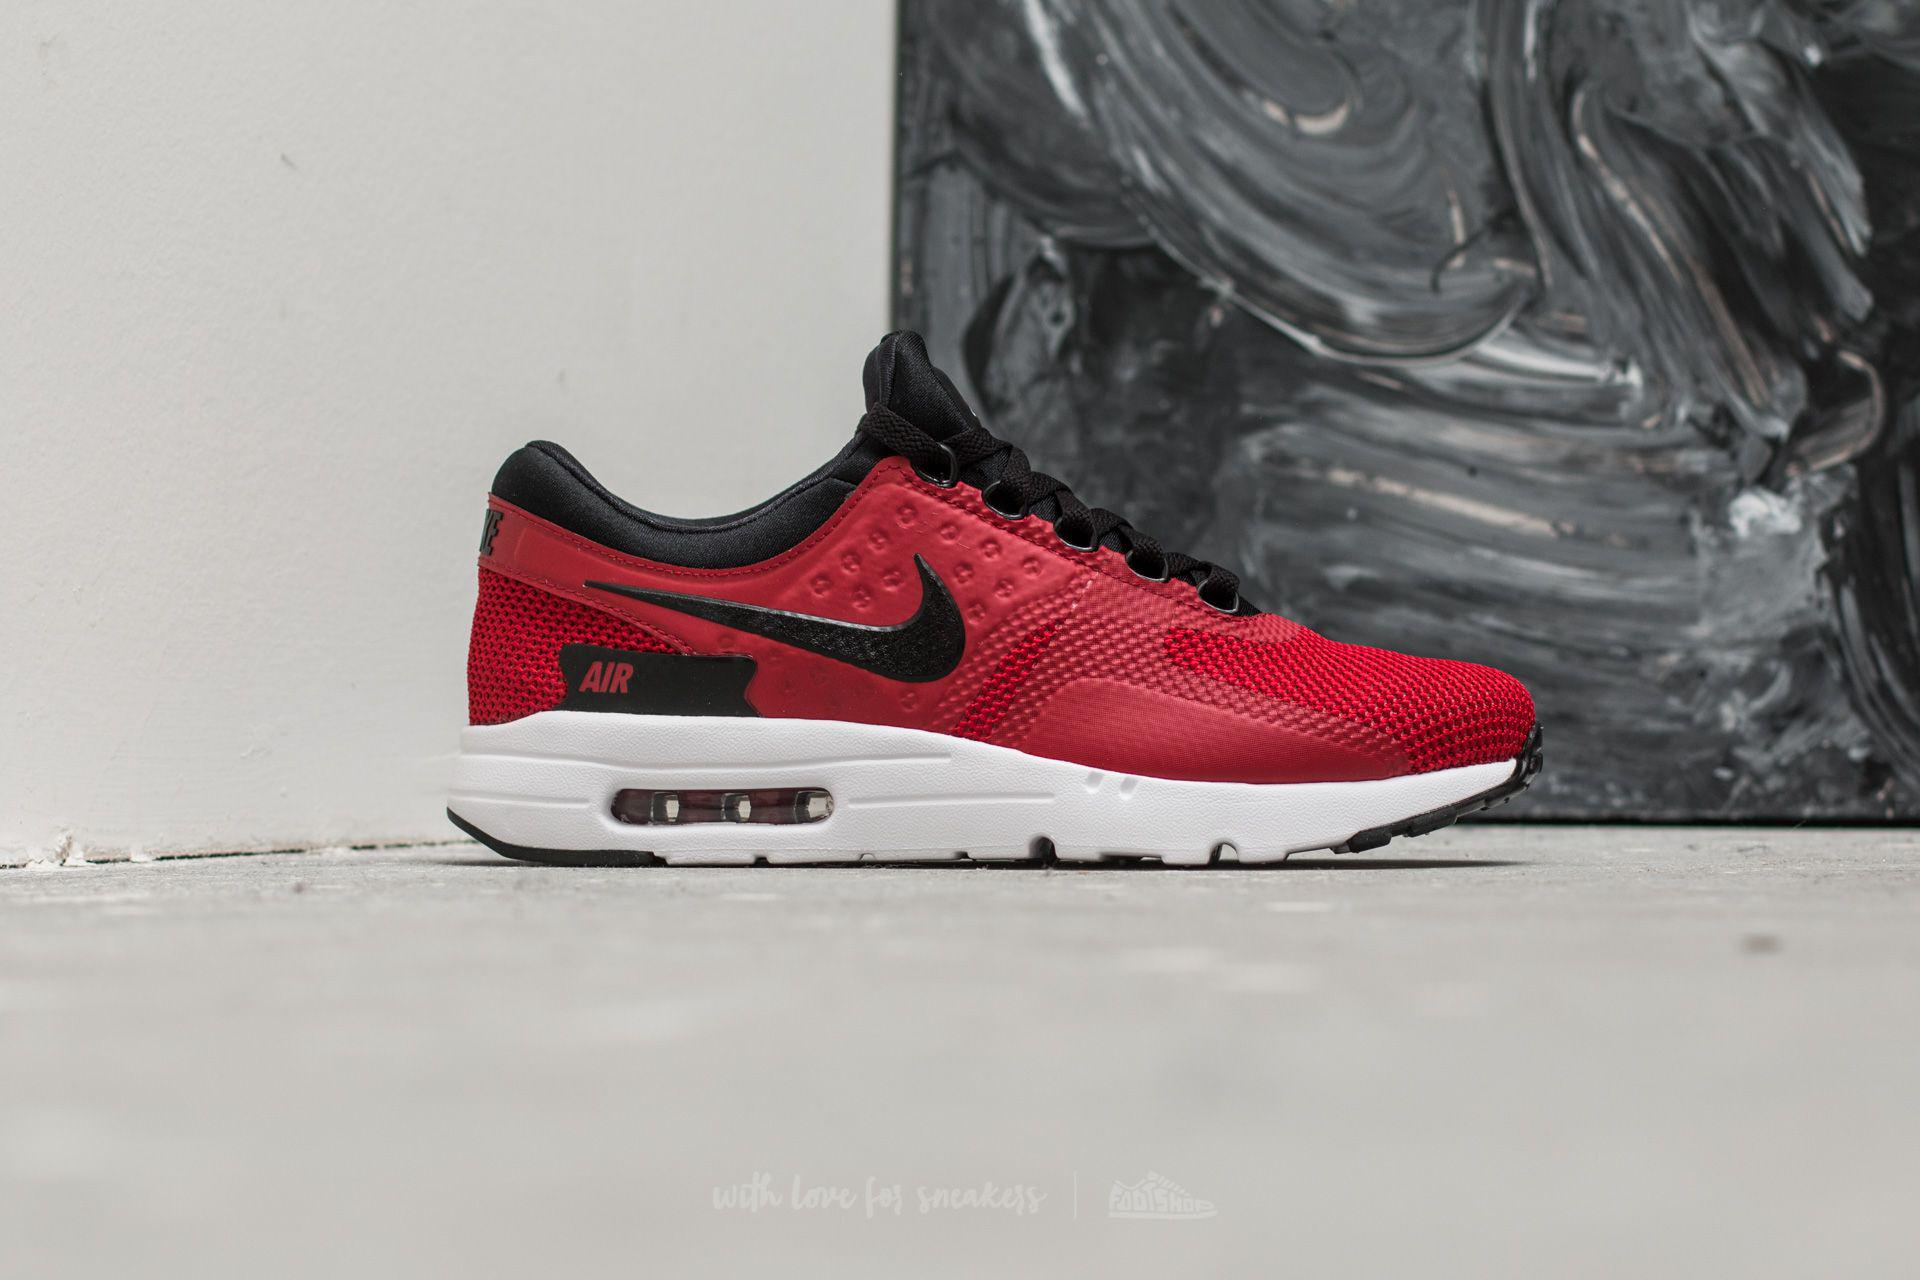 c1b6bc40c3 ... best price lyst nike air max zero essential tough red black white in  red for men